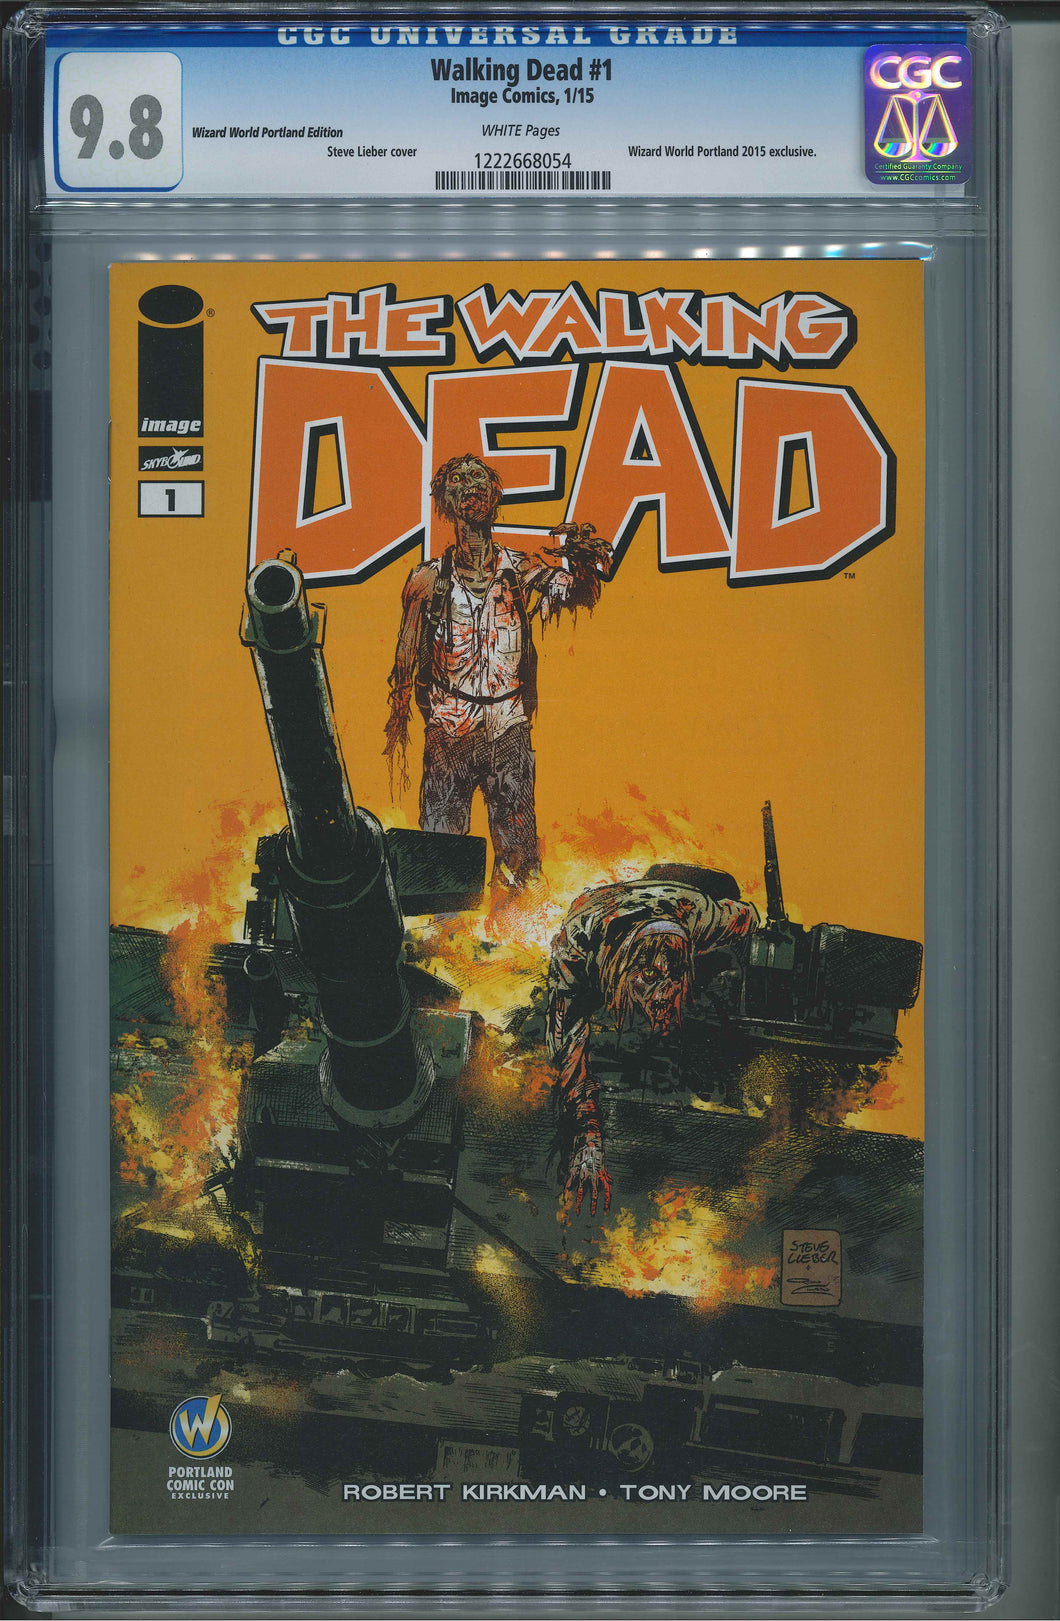 The Walking Dead #1 Wizard World Portland Edition CGC 9.8 Steve Lieber Cover